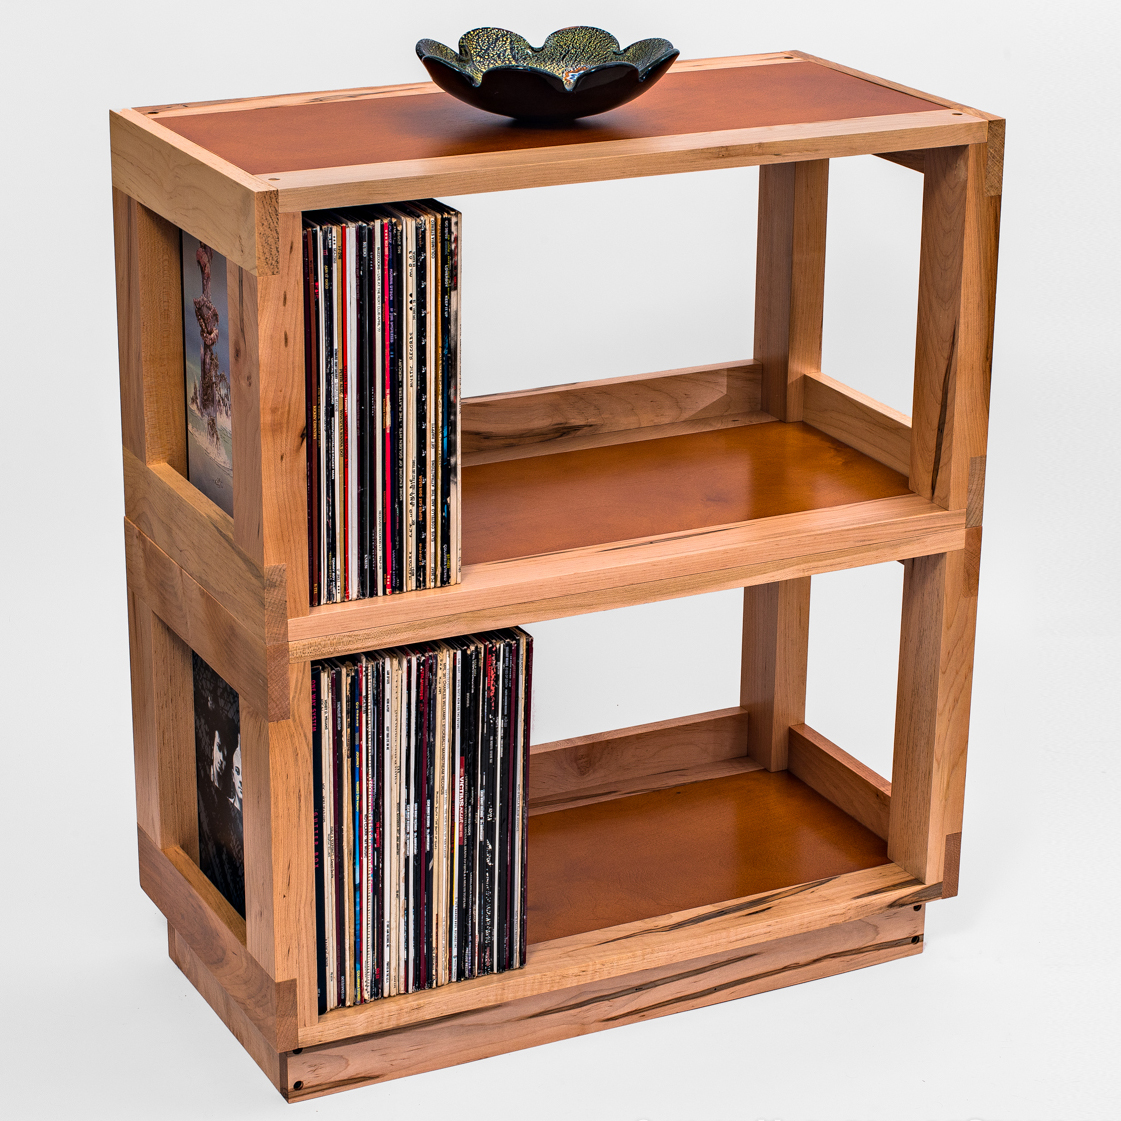 27 vinyl record storage and shelving solutions for Off the shelf cabinets